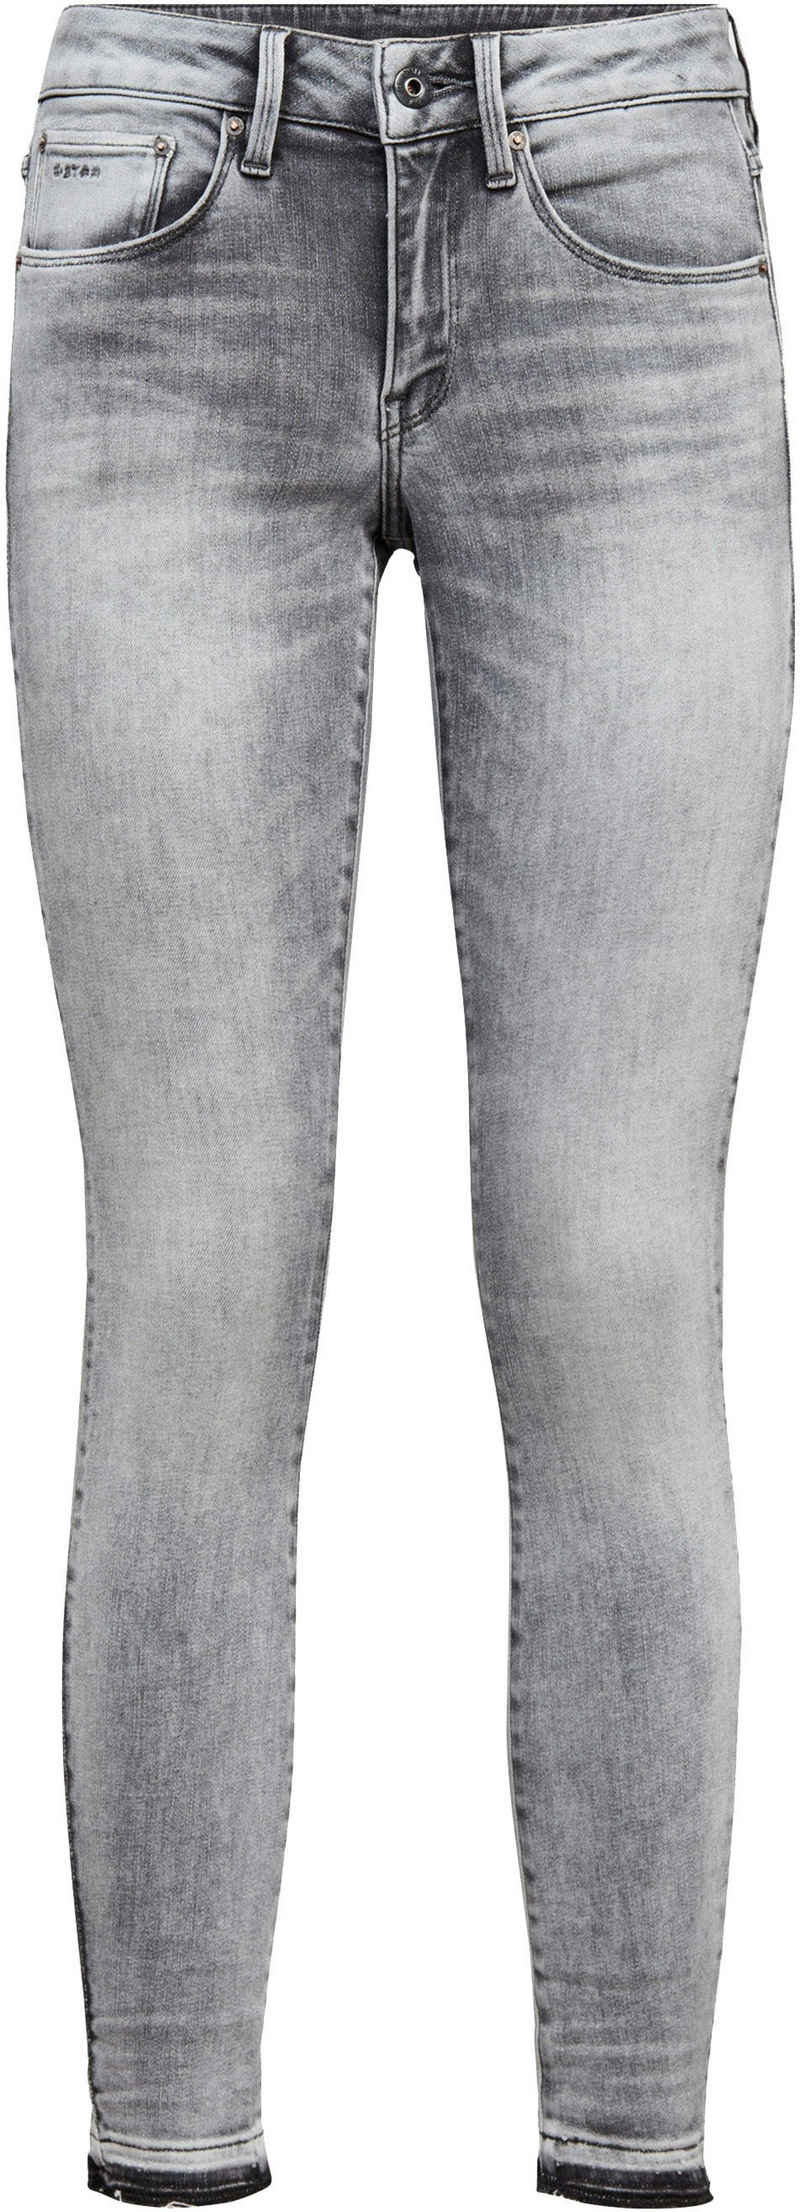 G-Star RAW Ankle-Jeans »3301 Mid Skinny RP Ankle Jeans« mit leicht ausgefranster Kante am Saumabschluss